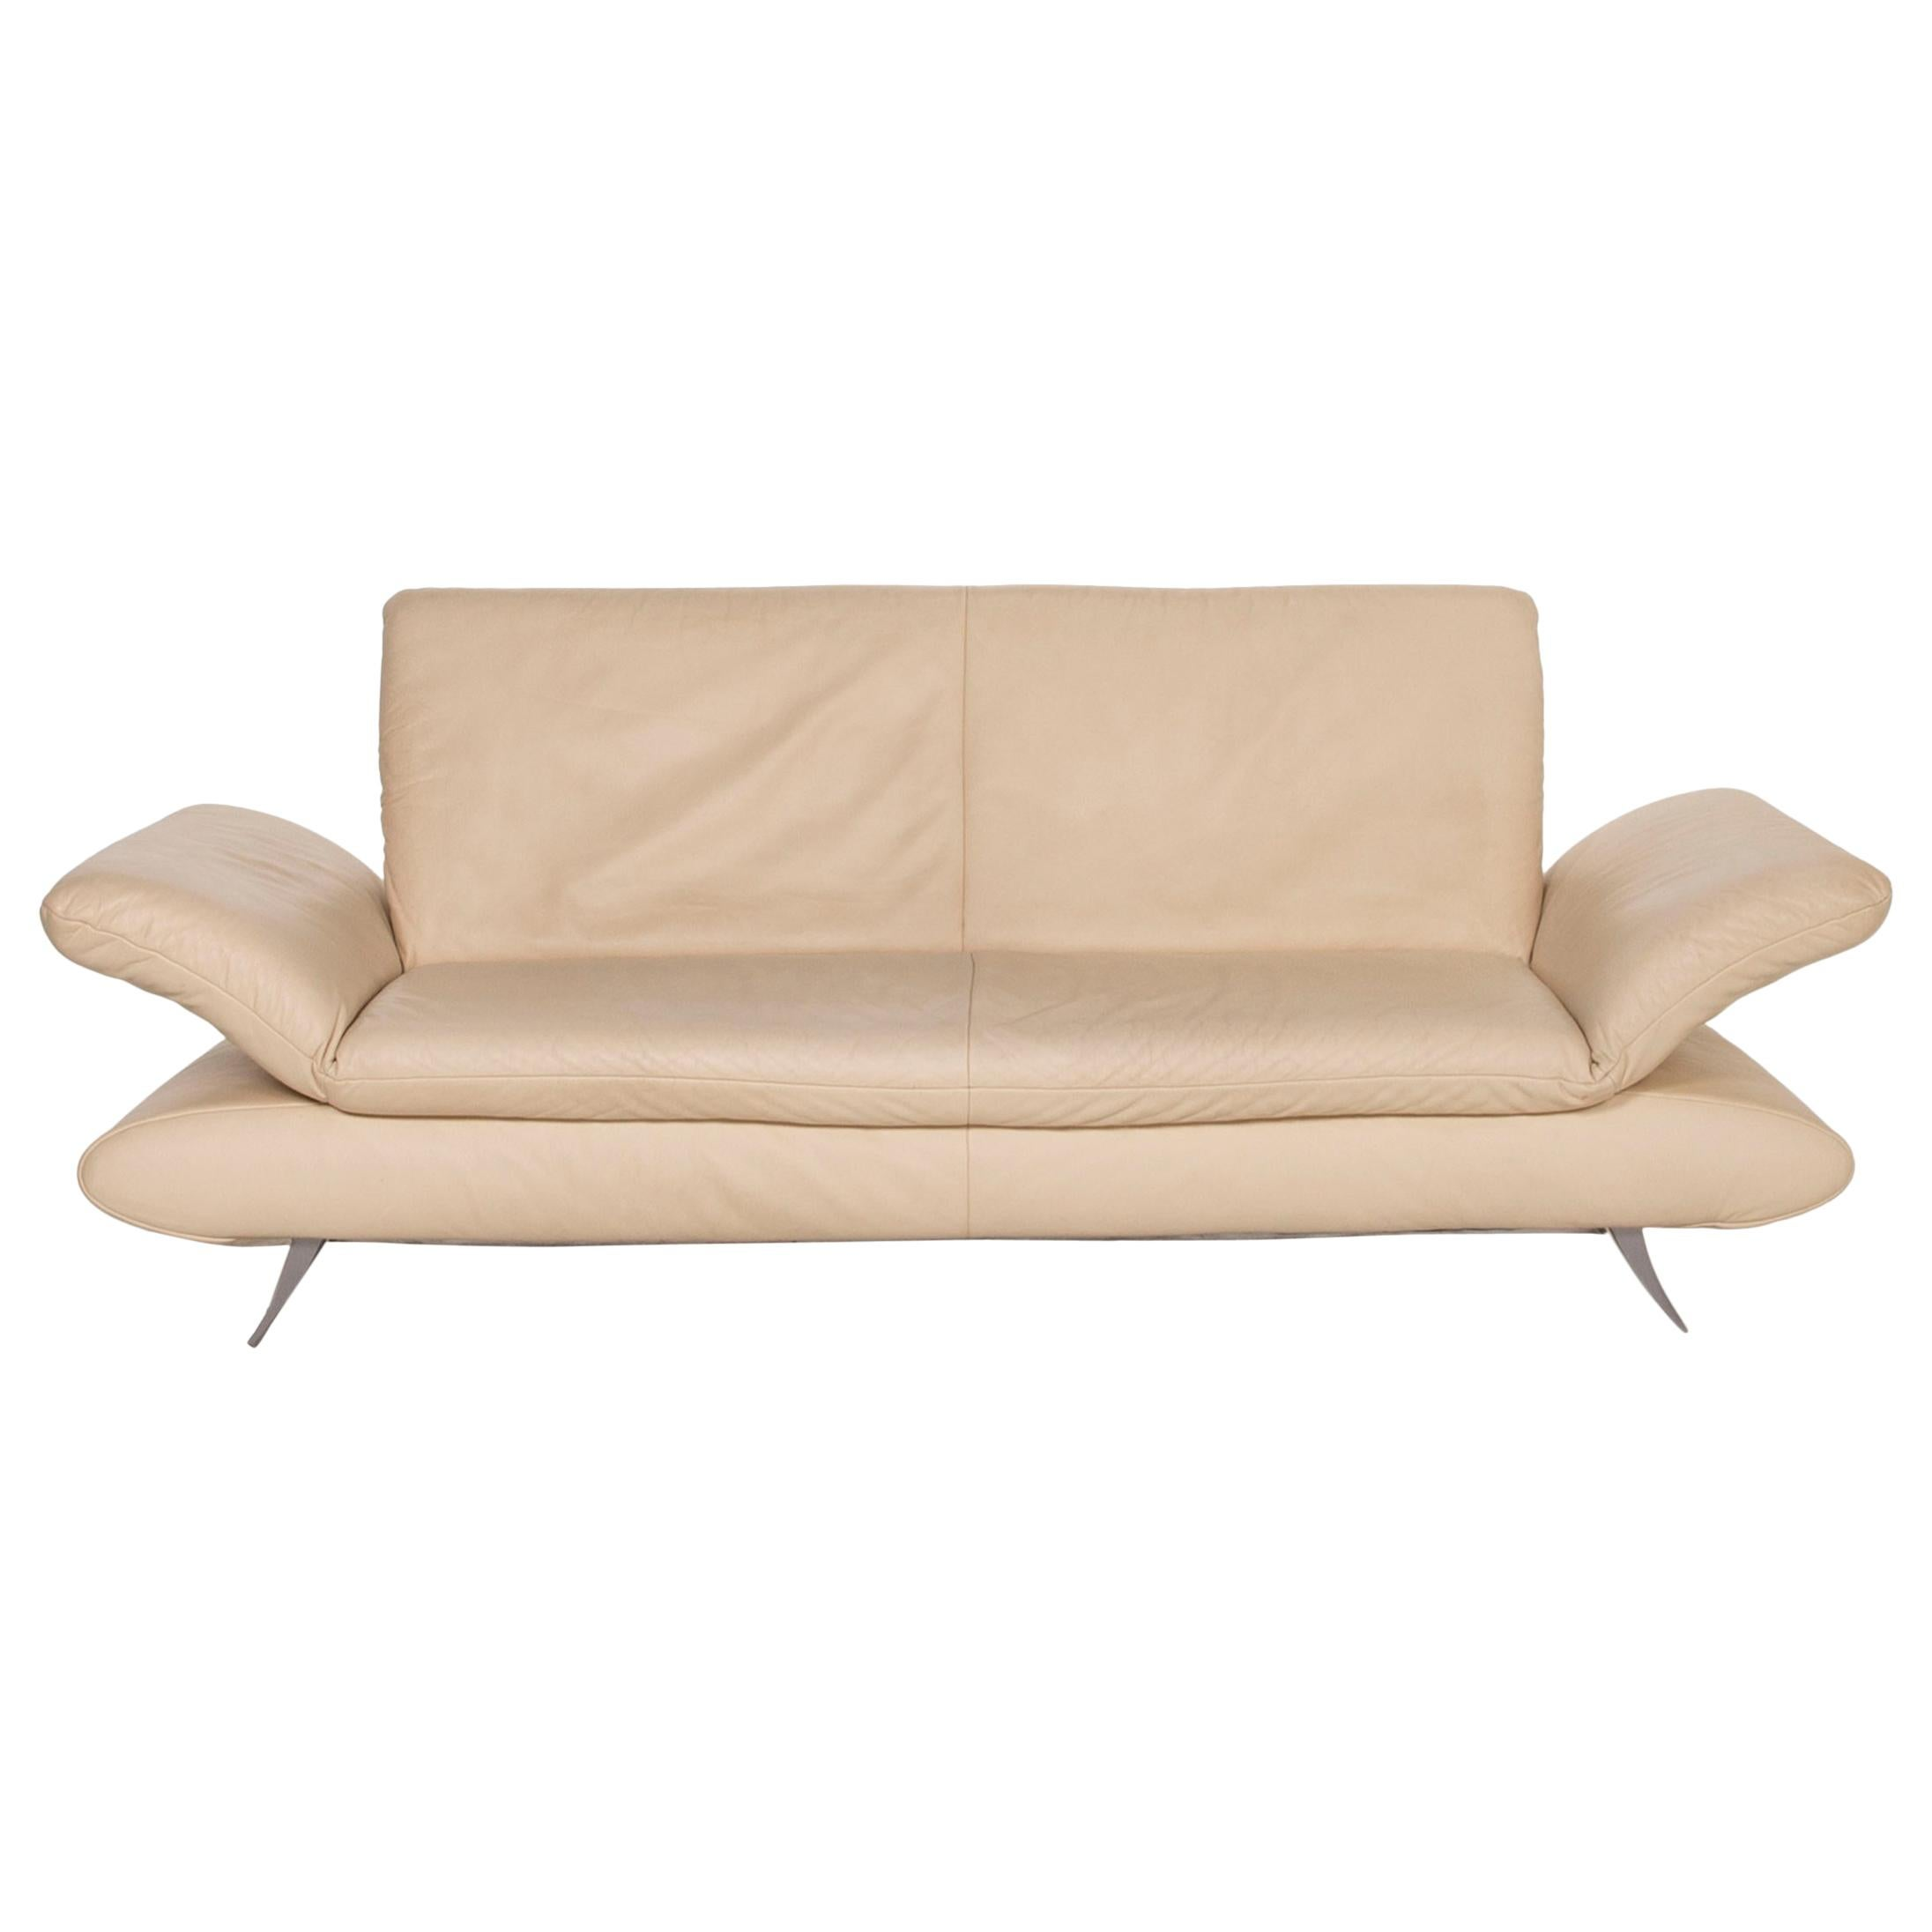 Koinor Rossini Leather Sofa Cream Three-Seater Function Couch